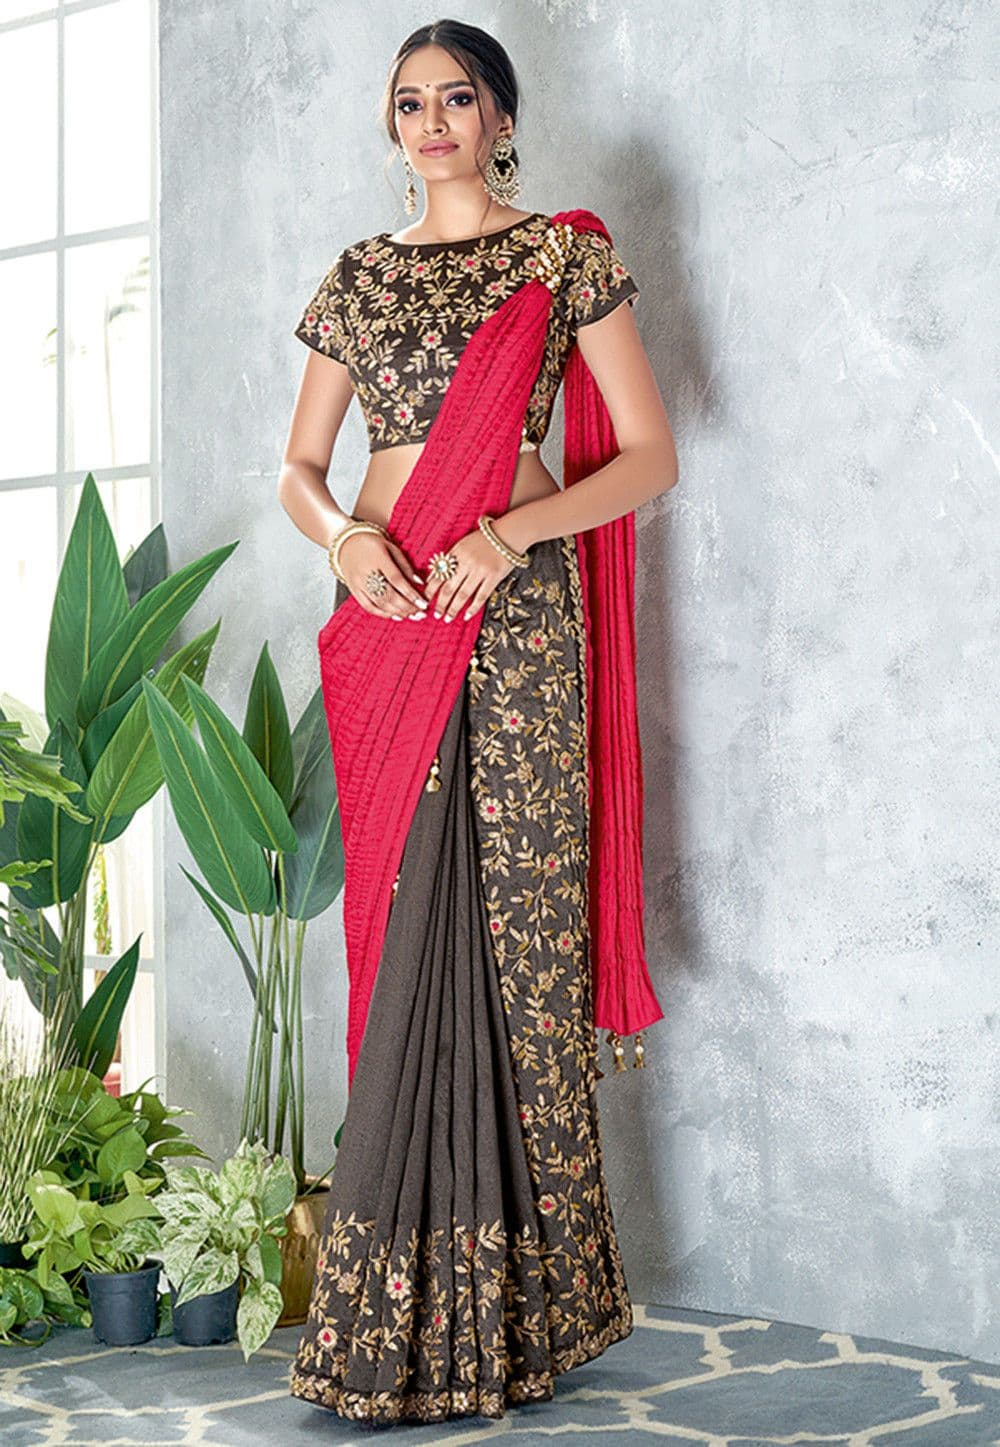 Butterfly Pallu Art Silk Pre-stitched Saree in Coral Red and Grey